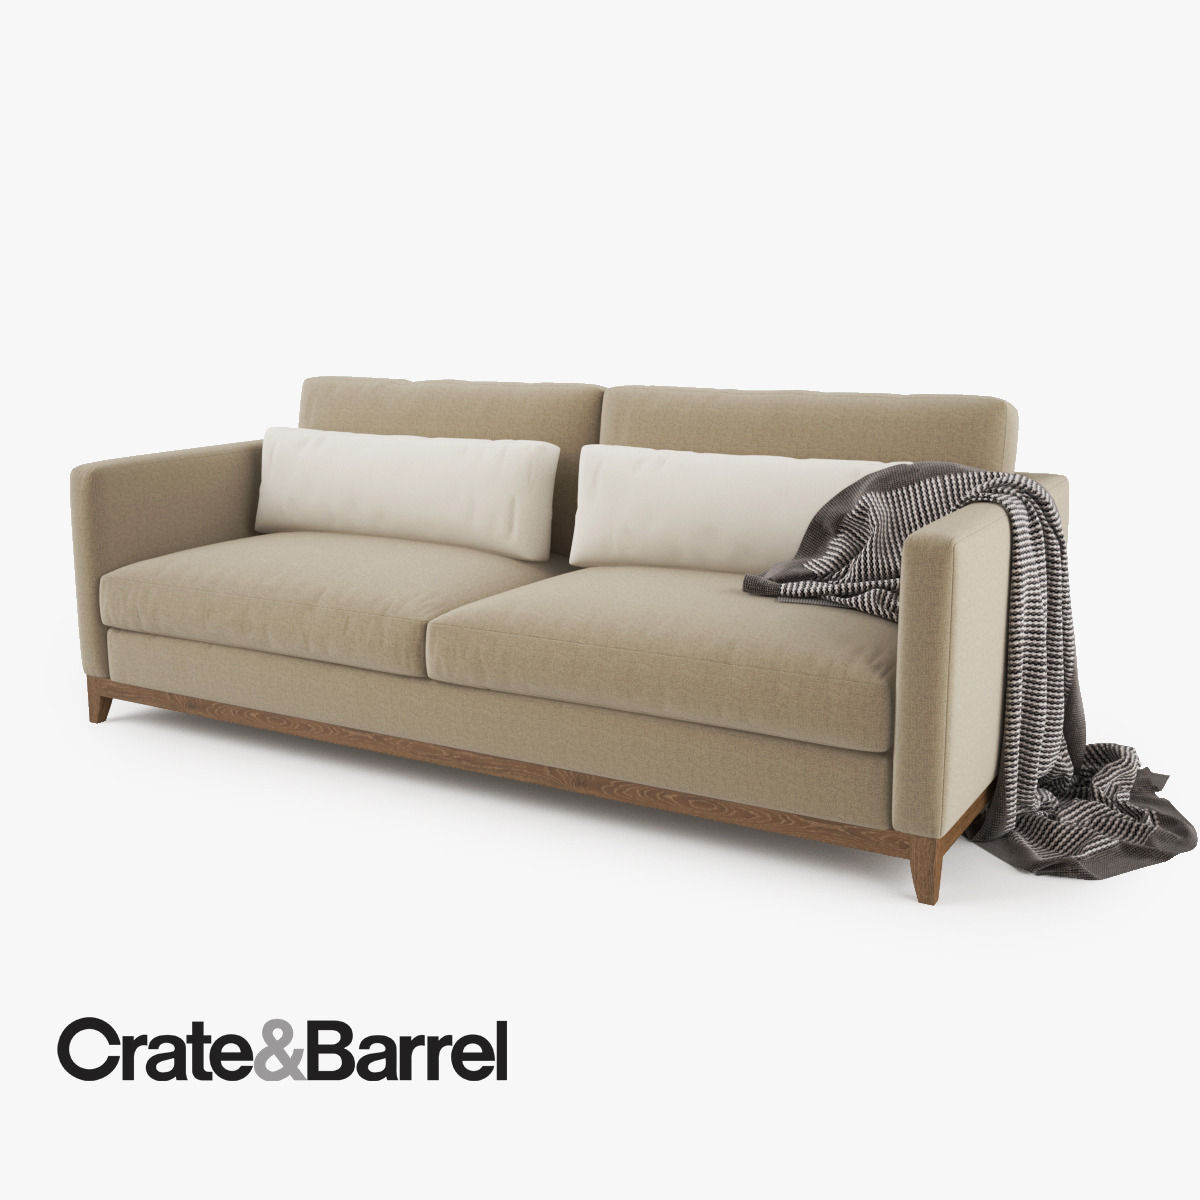 crate and barrel taraval 2 seat sofa 3d model max obj fbx. Black Bedroom Furniture Sets. Home Design Ideas